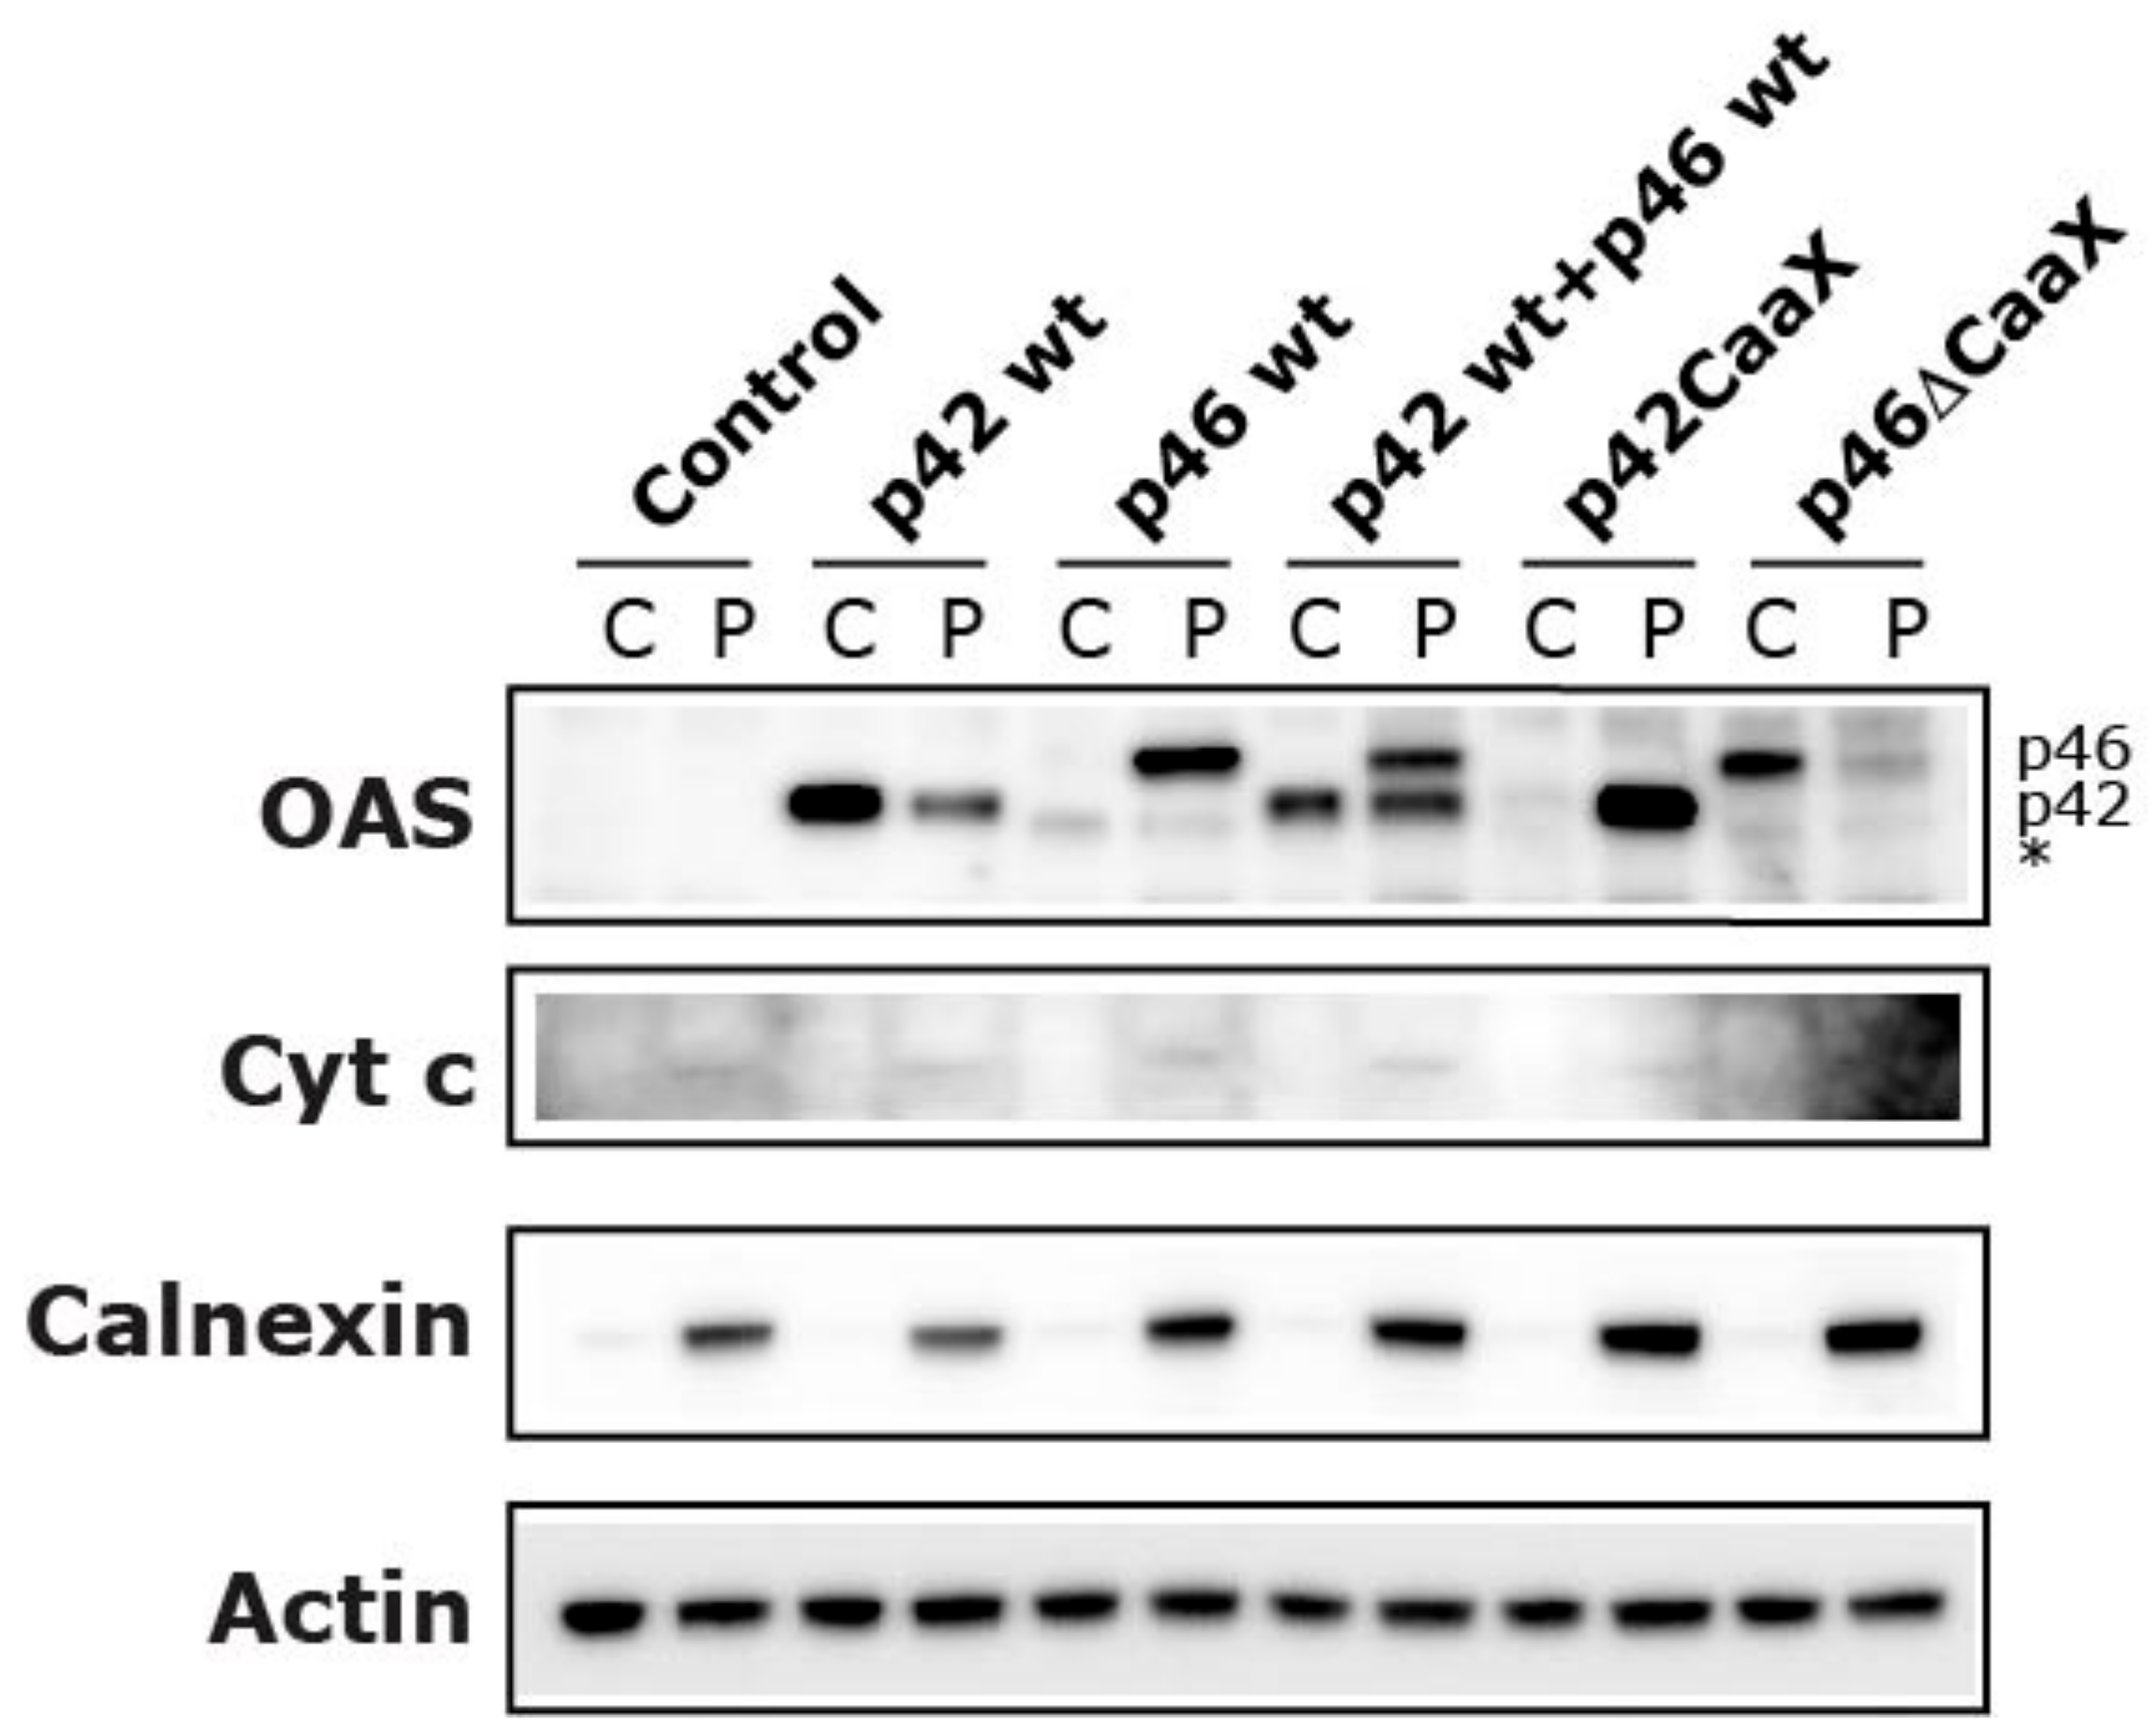 Viruses Free Full Text The Cellular Localization Of The P42 And P46 Oligoadenylate Synthetase 1 Isoforms And Their Impact On Mitochondrial Respiration Html